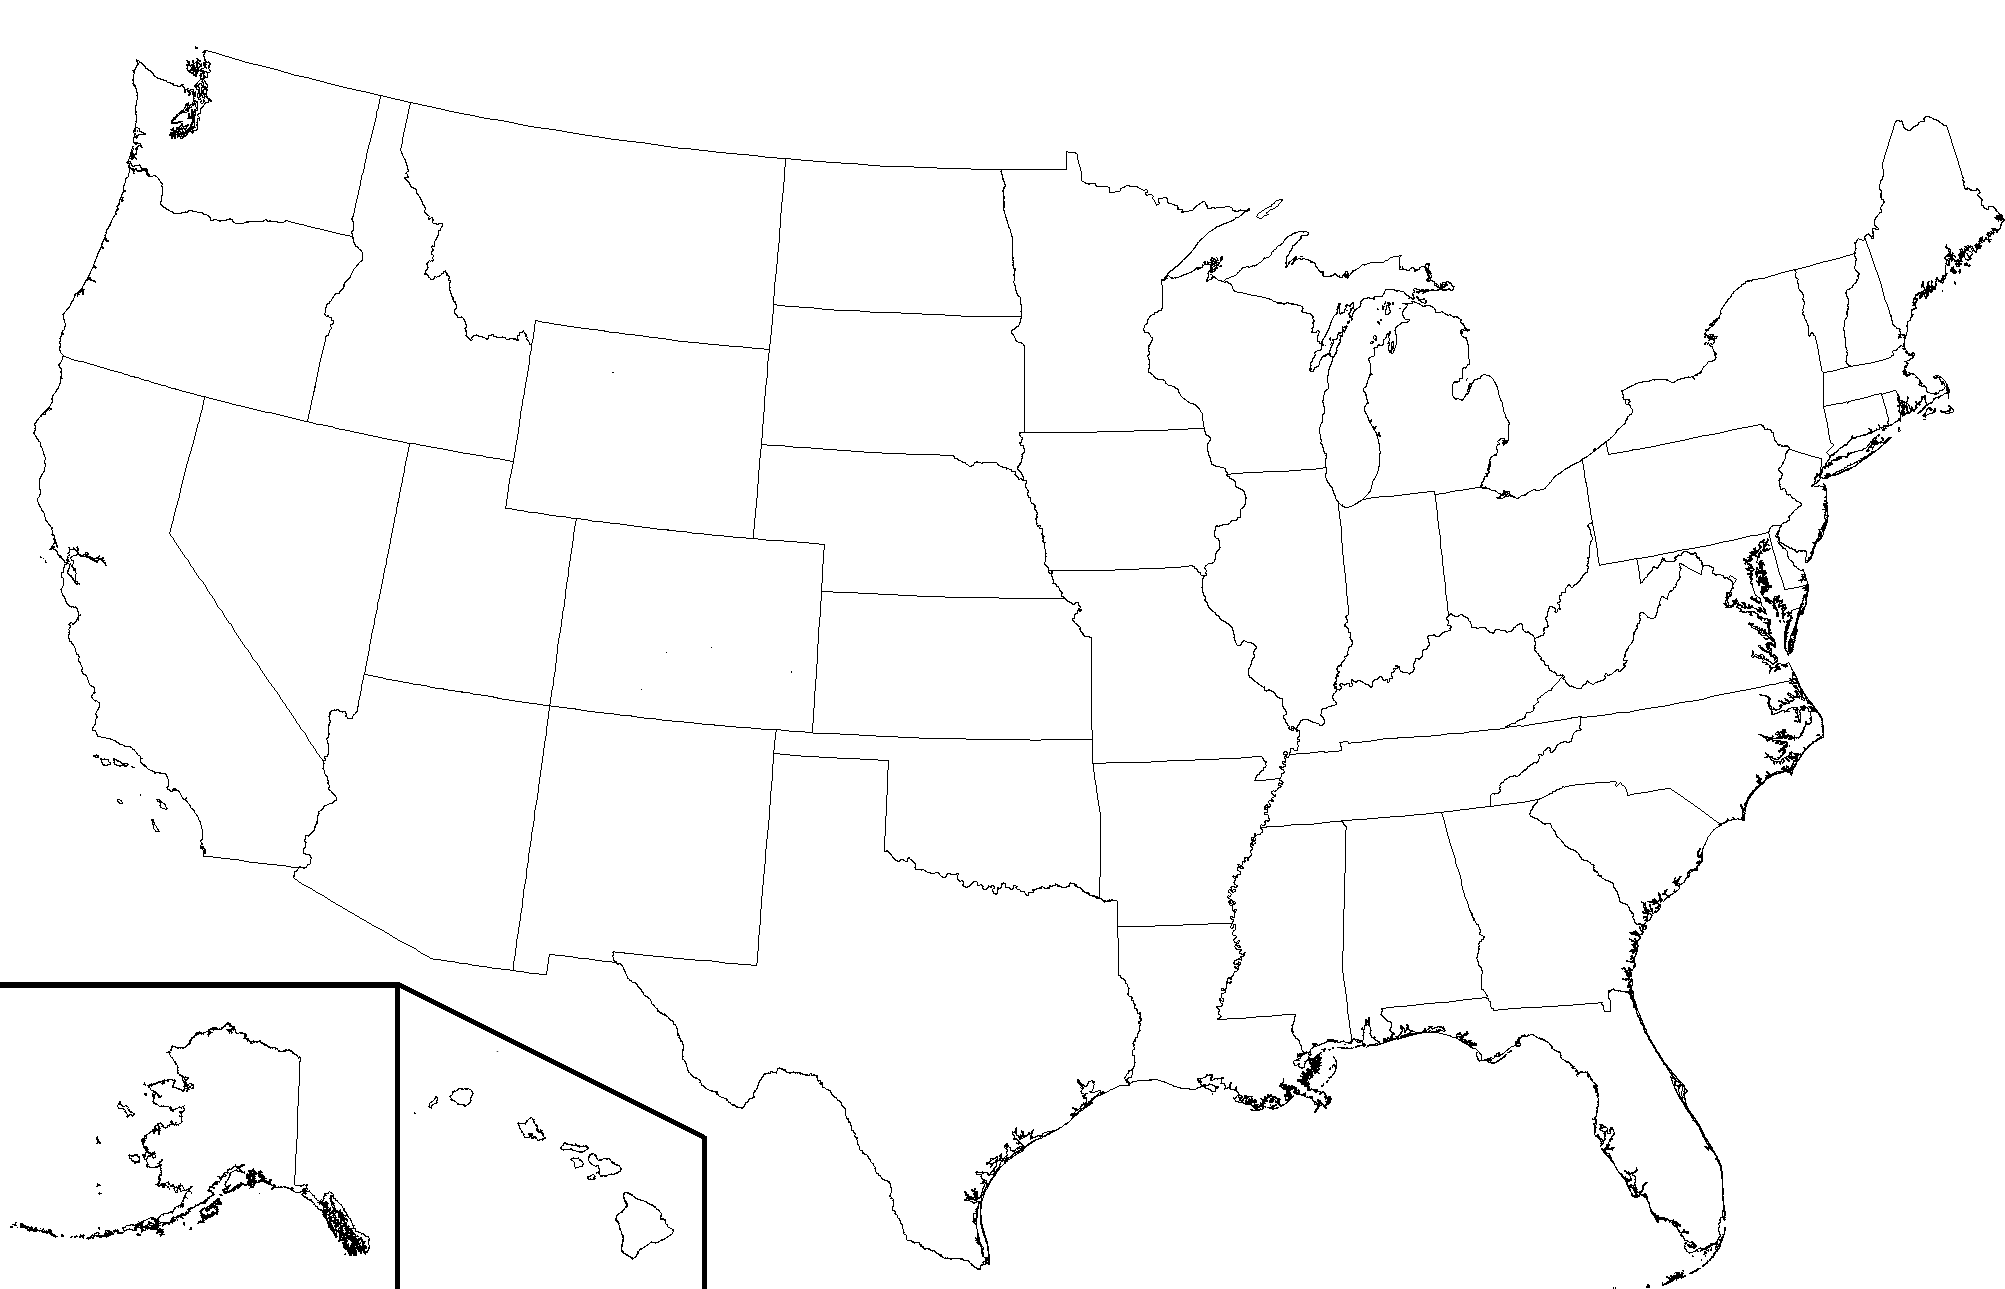 Usa Map Outline Drawing Thumbnail Usa Get Free Image About World - Blank map of the united states wikipedia